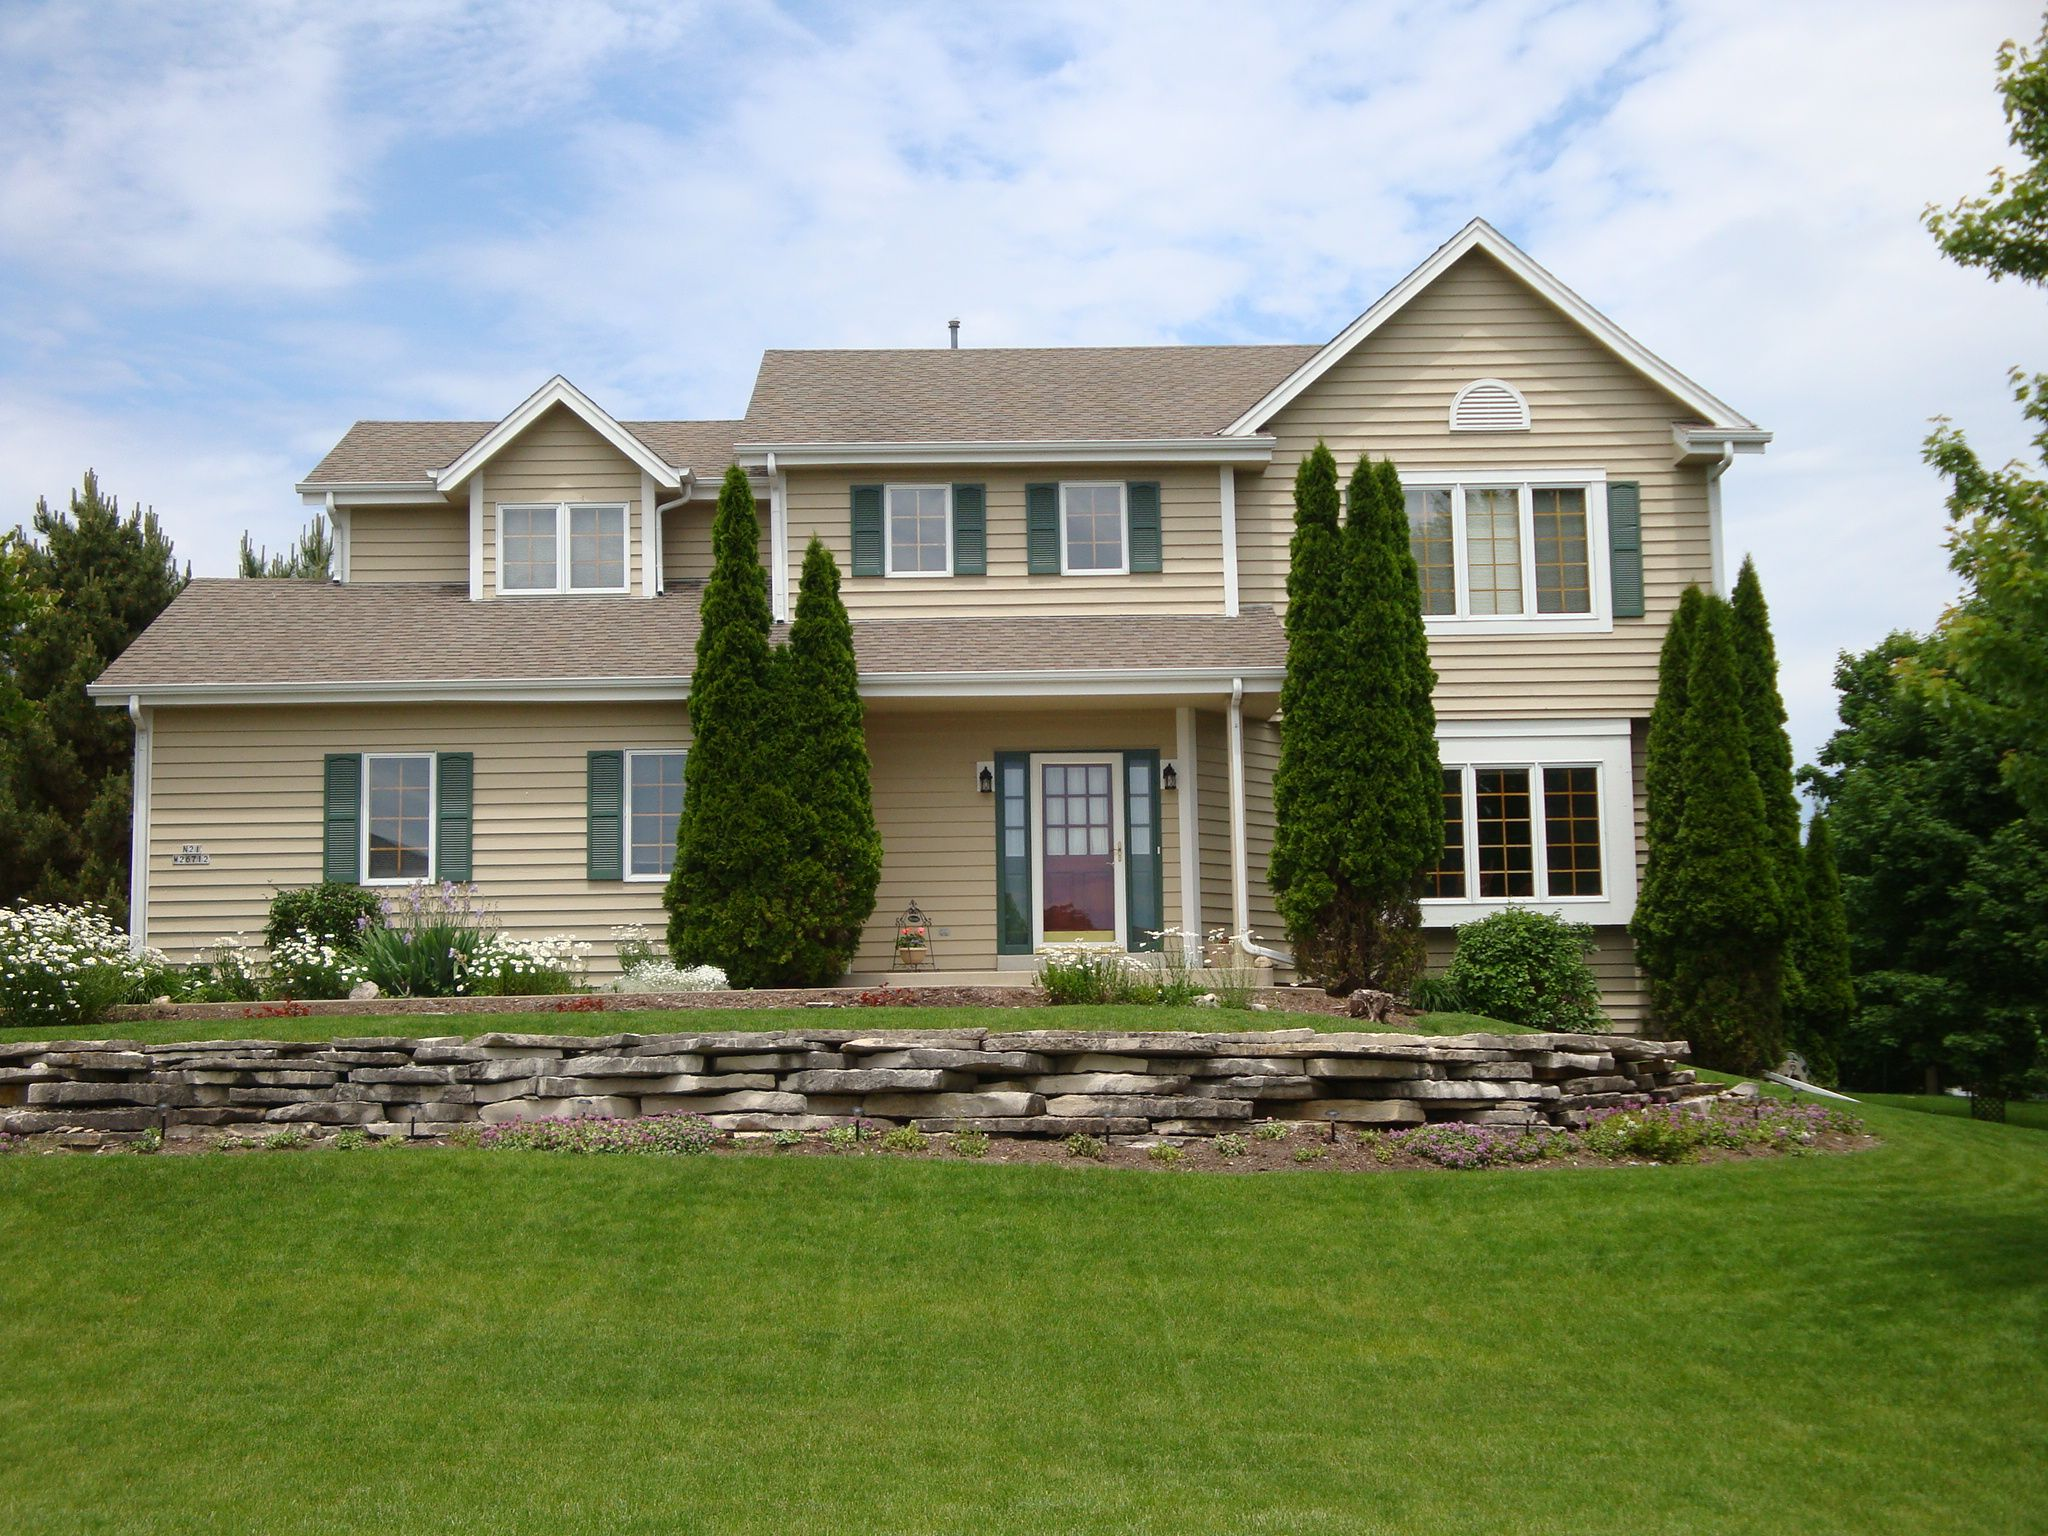 n21w26712 cattail ct for sale pewaukee wi trulia